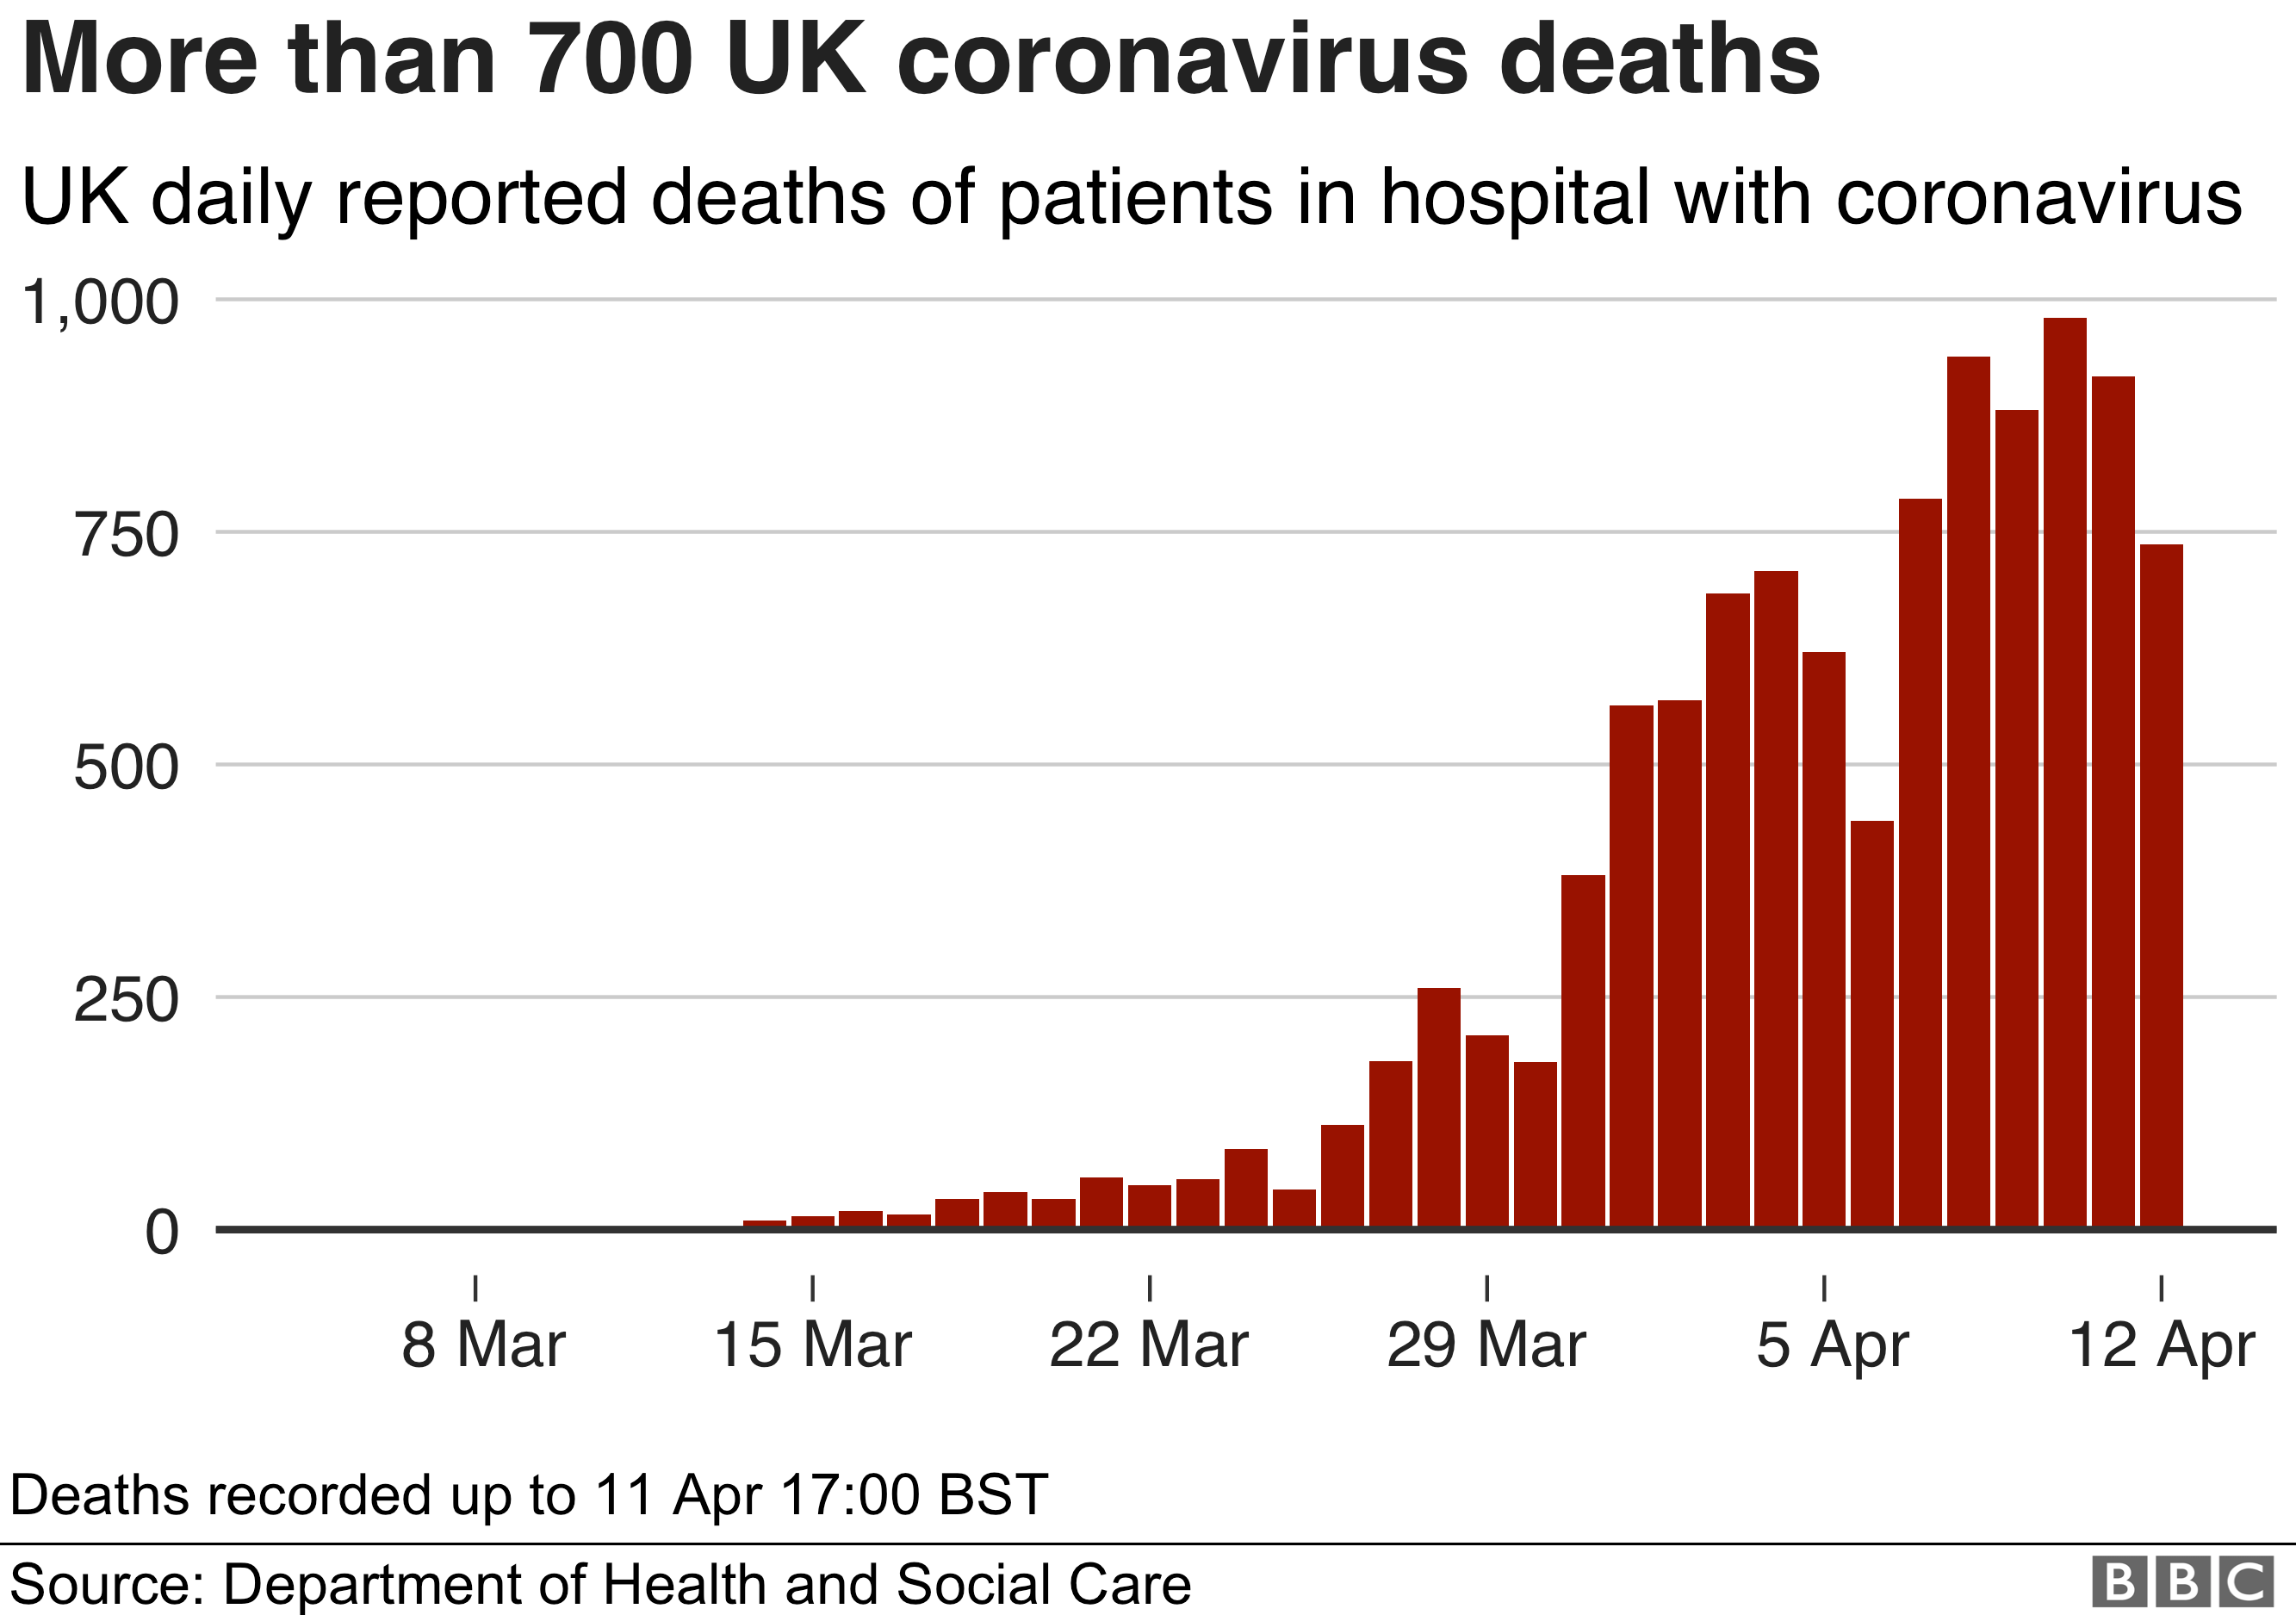 Graph showing the number of coronavirus deaths